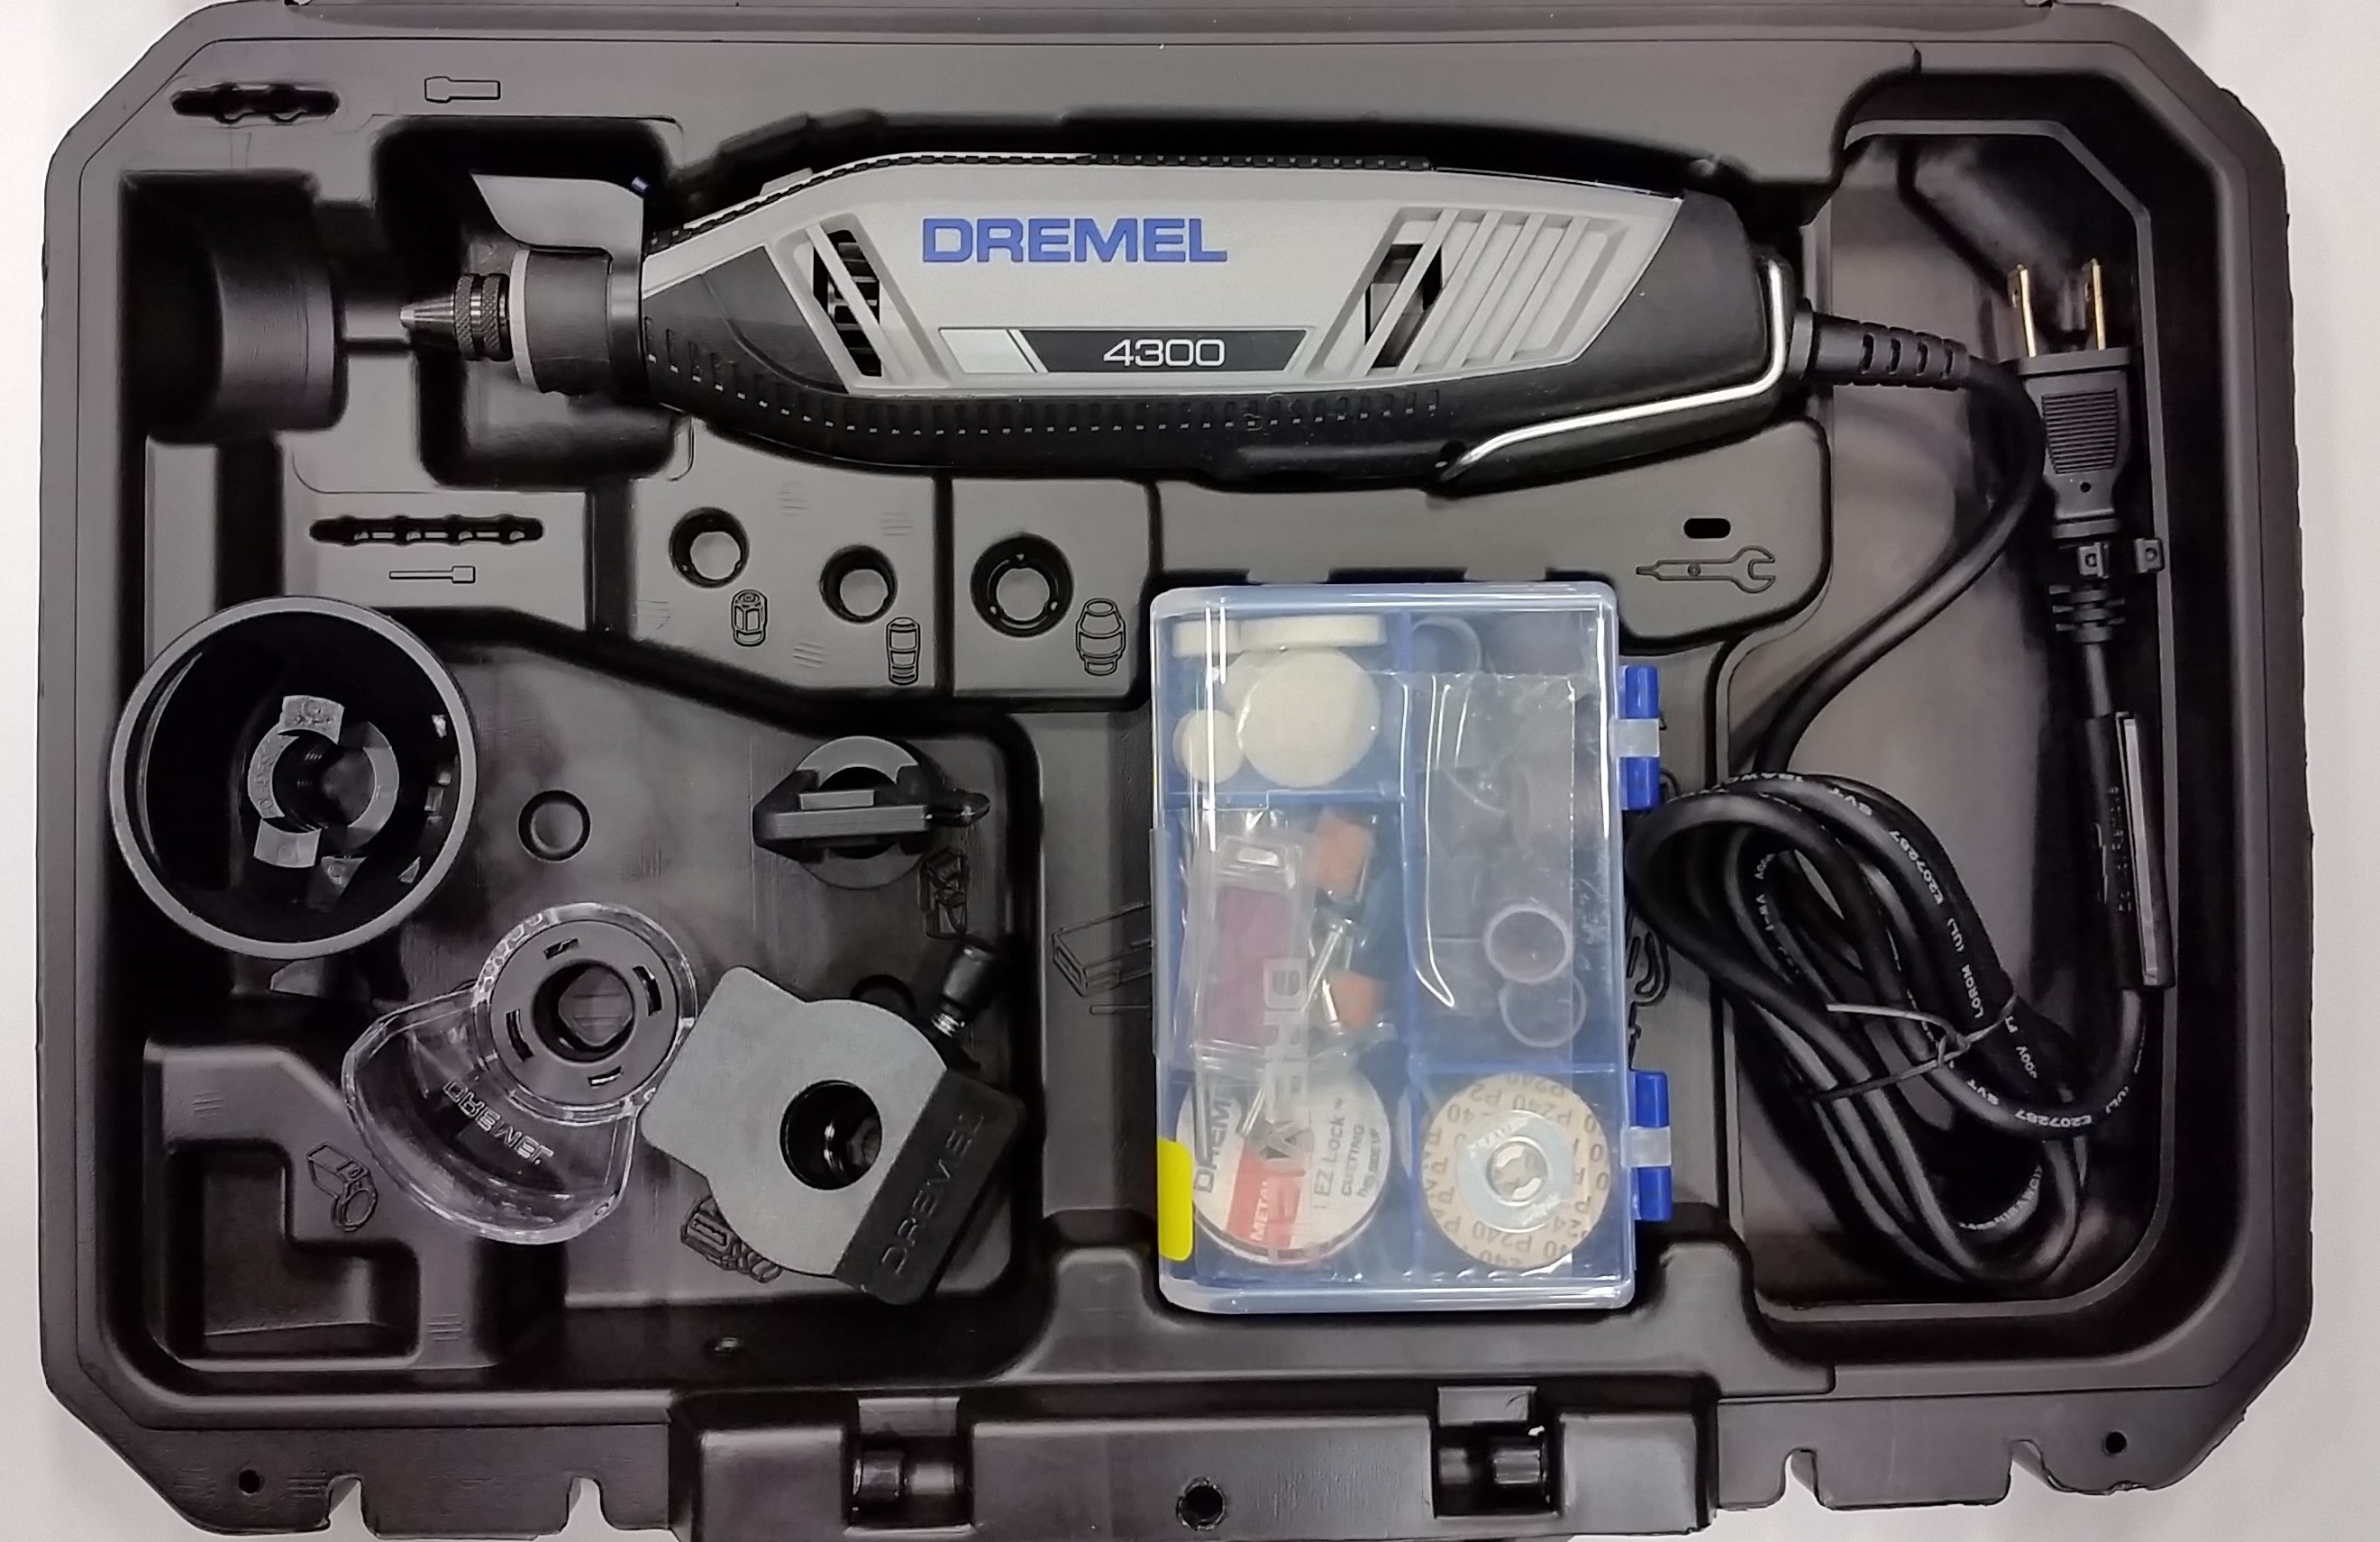 Dremel 4300 High Performance Rotary Tool Kit